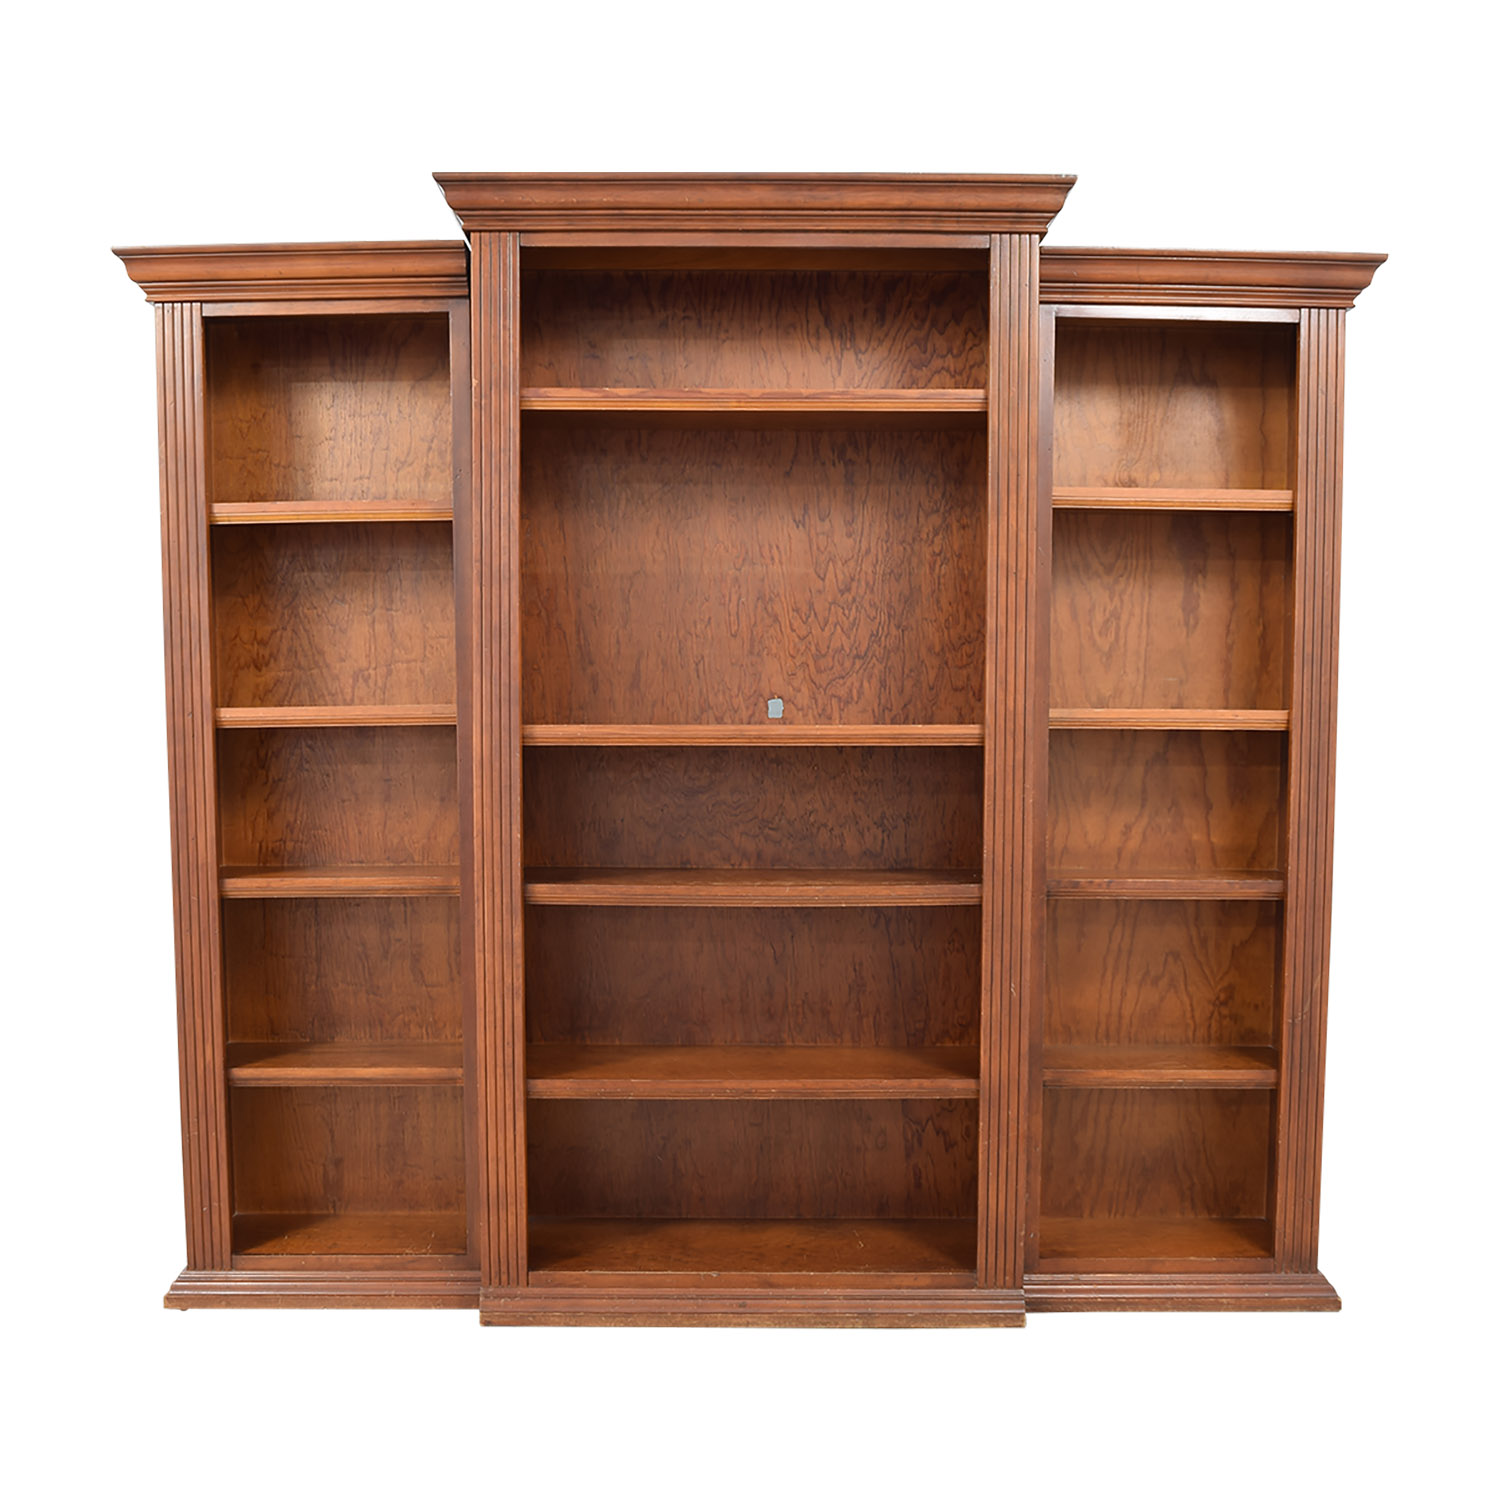 Three Piece Bookcase Storage